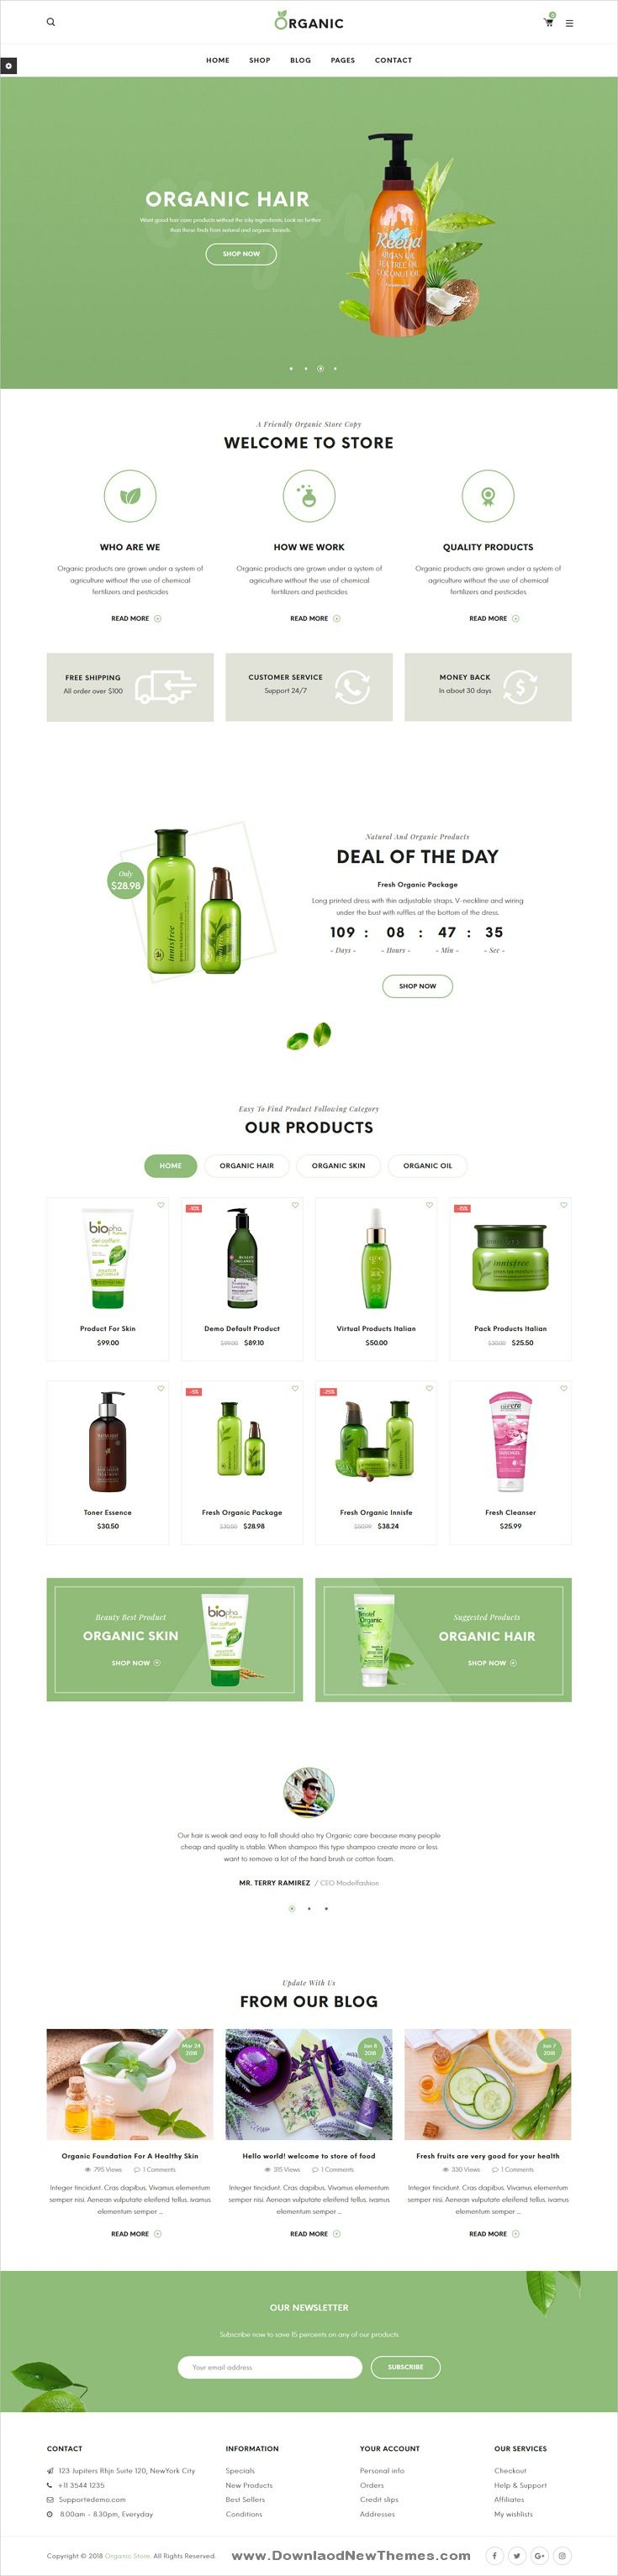 Organic is a clean elegant and modern design 3in1 responsive